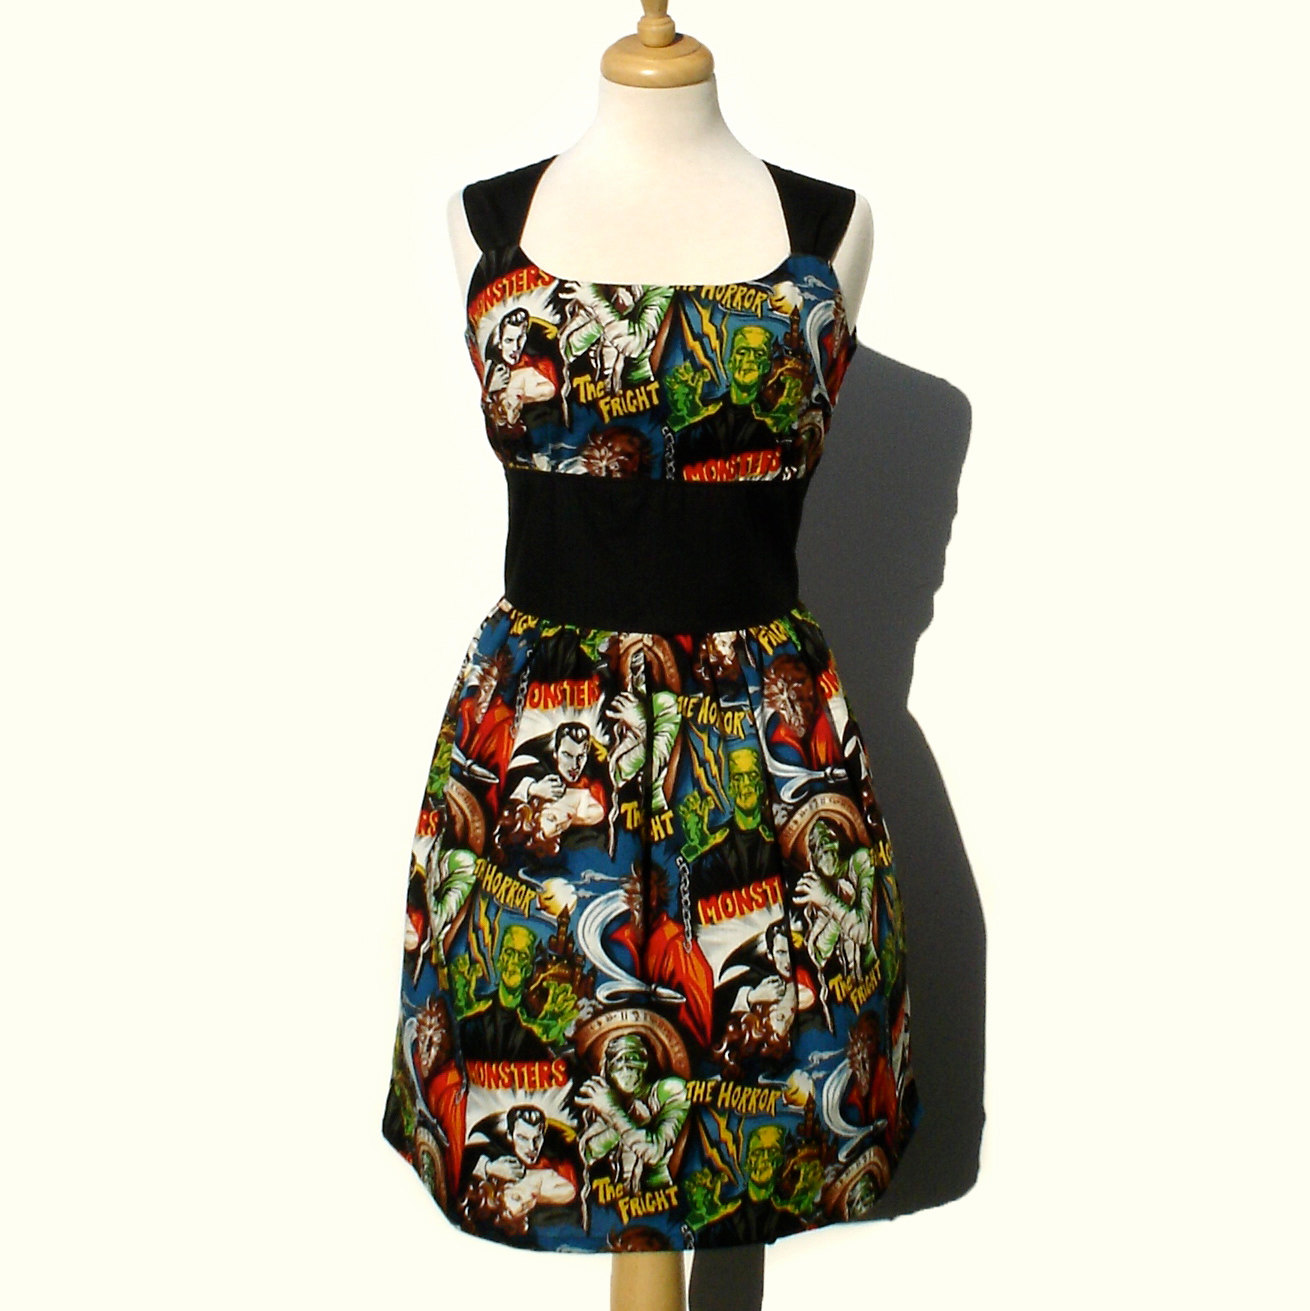 98e5c3516cb Rockabilly Pinup Dress Classic Pinup Dress / Monsters Vintage Inspired  1950s Horror Movie Pinup Hollywood Monster Dress